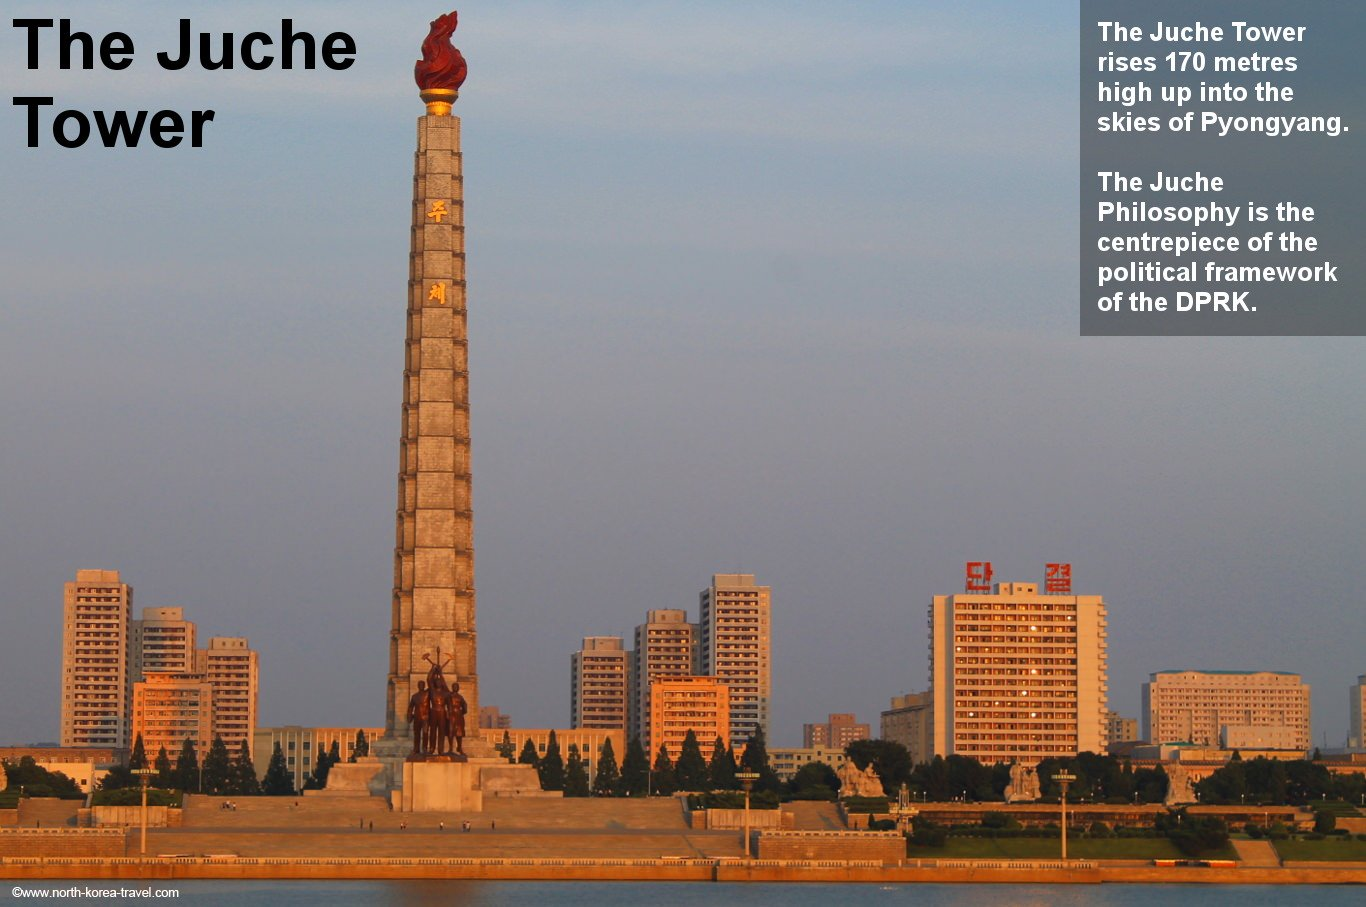 Juche Tower in Pyongyang across the Taedong River during sunset, North Korea (DPRK). Picture taken by KTG Tours